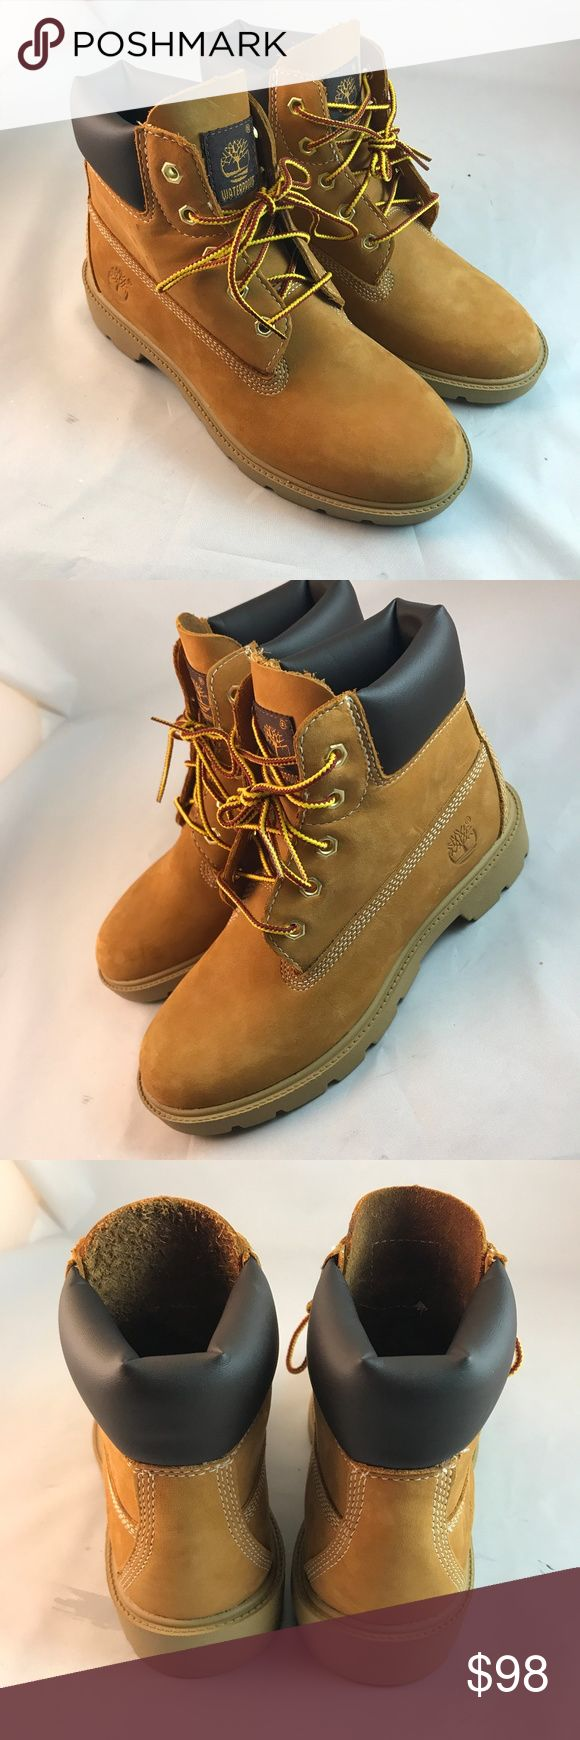 "Great Timberland Boots 3.5 Youth, Size 5 Womens TIMBERLAND JUNIOR 6"" CLASSIC WATERPROOF BOOT WHEAT 10960 Sz 3.5 Y or Size 5 Womens. Timberland Shoes Boots"